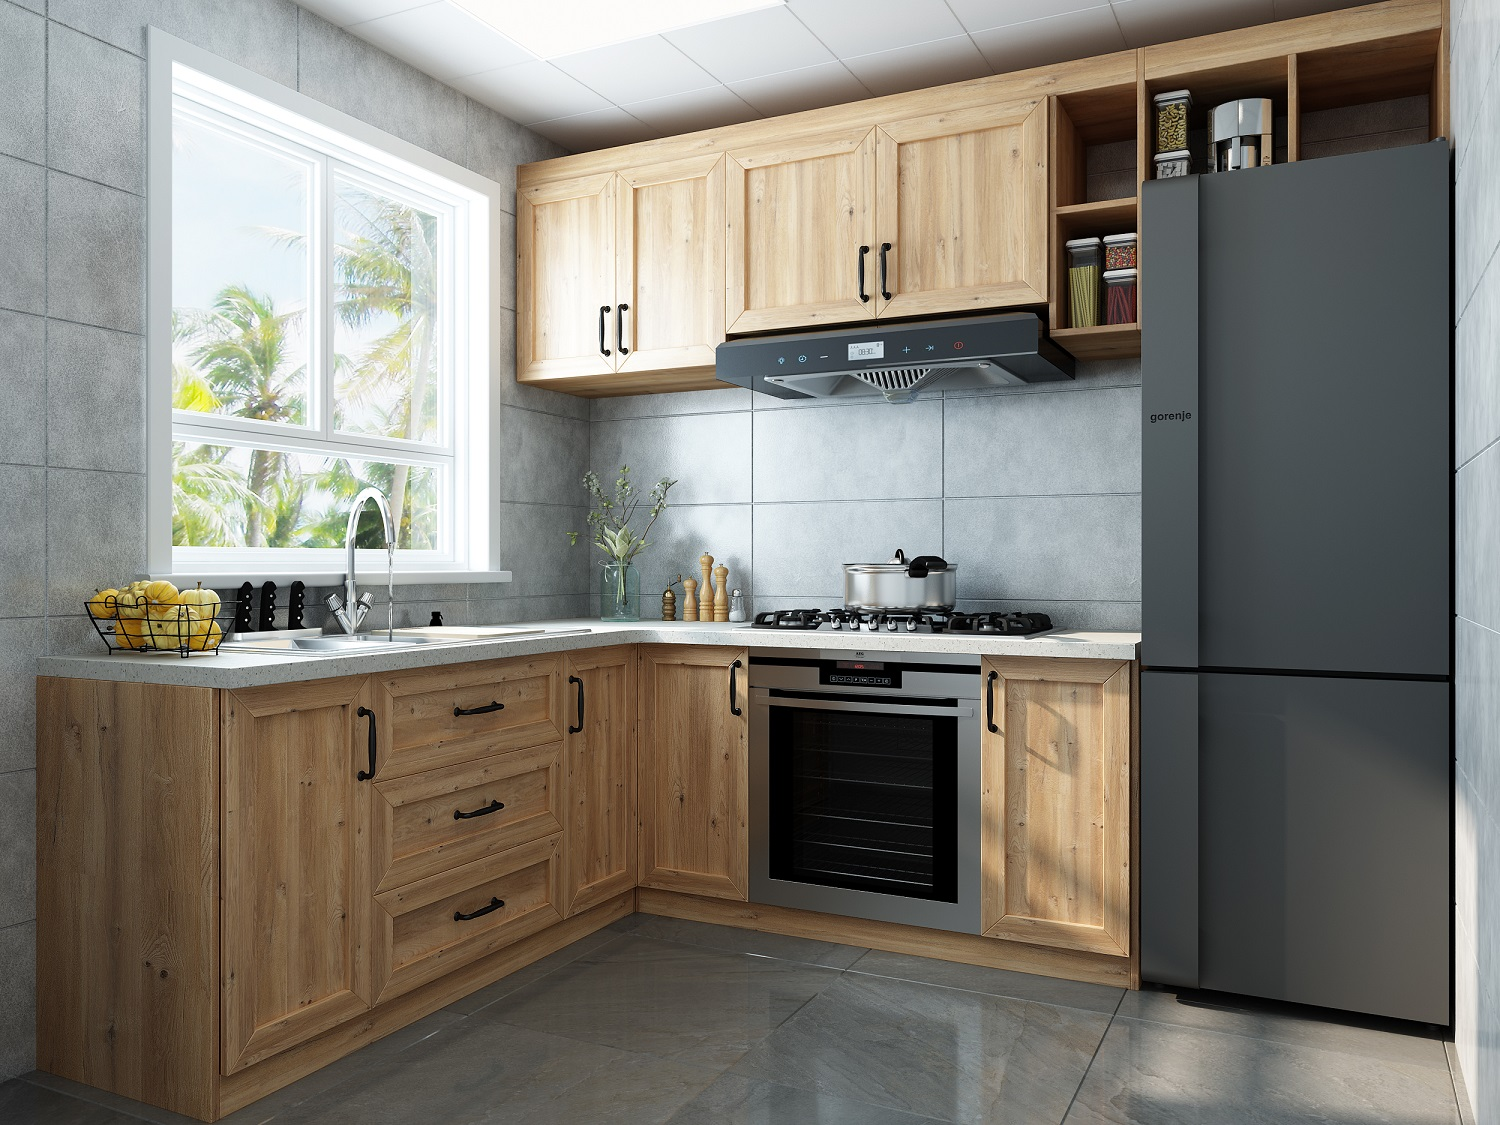 kitchen-furniture-style.jpg